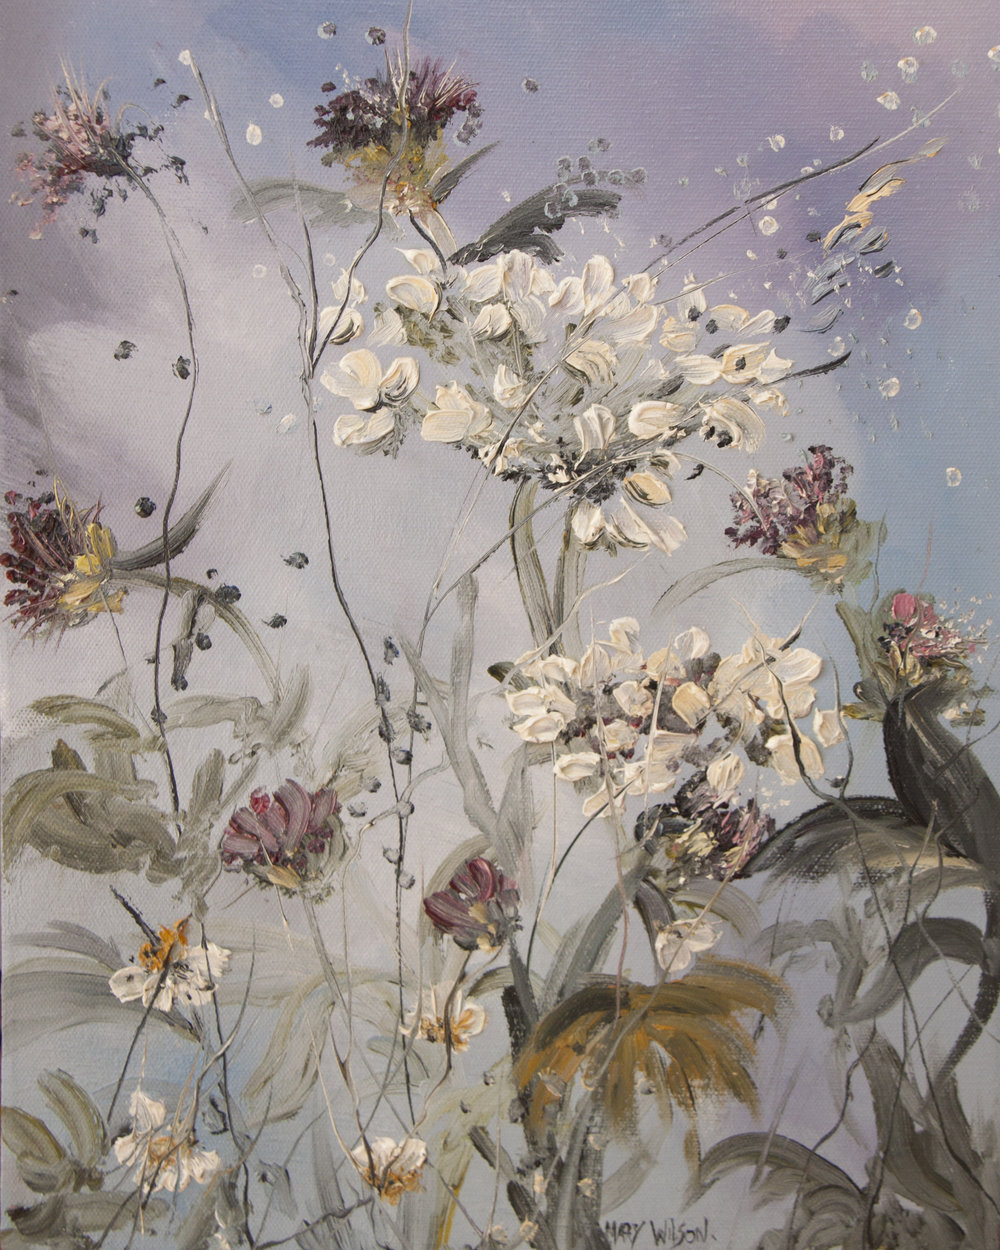 'Wild Blooms' by artist Mary Wilson.jpg